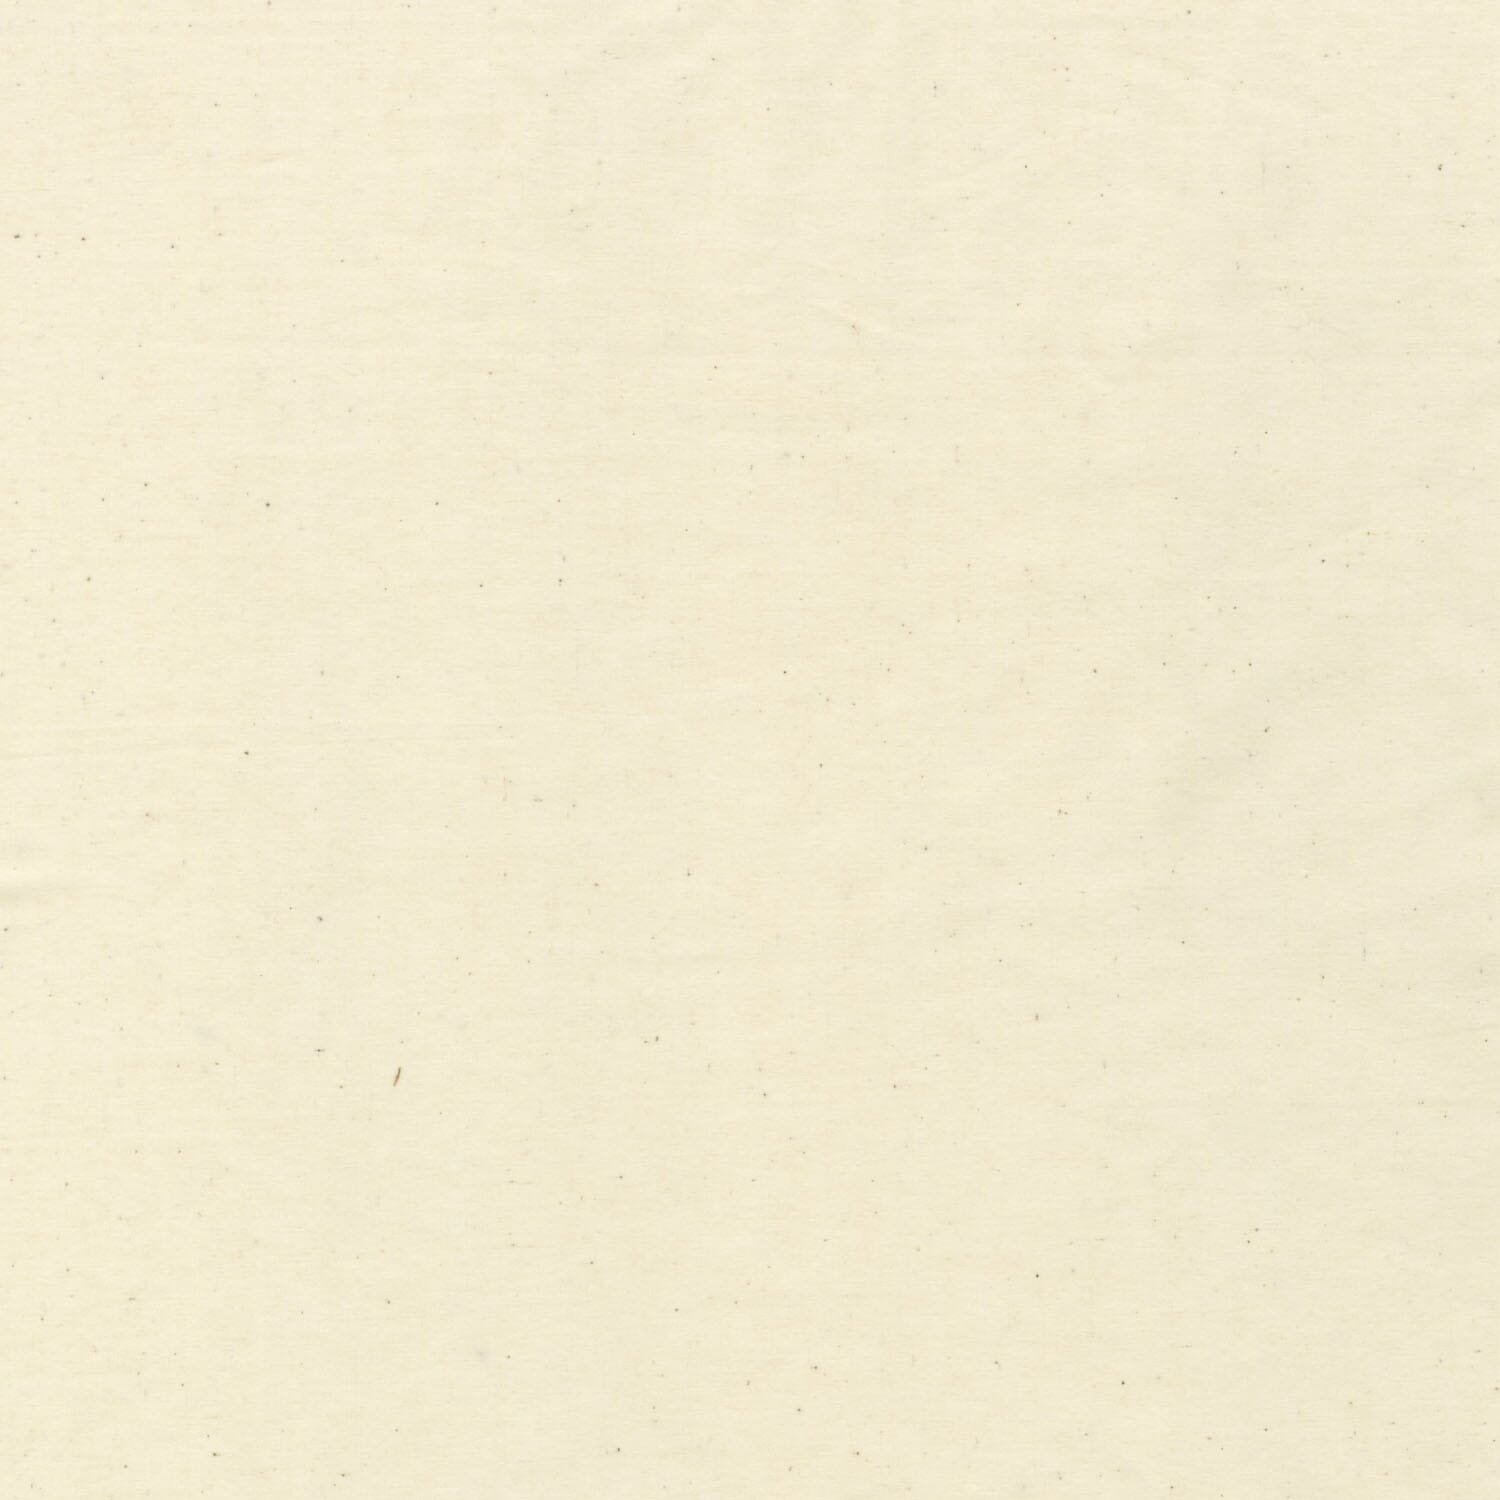 Calico Natural 45 Inch Wiide Permanent Press Finish 200 Count Cotton Fabric